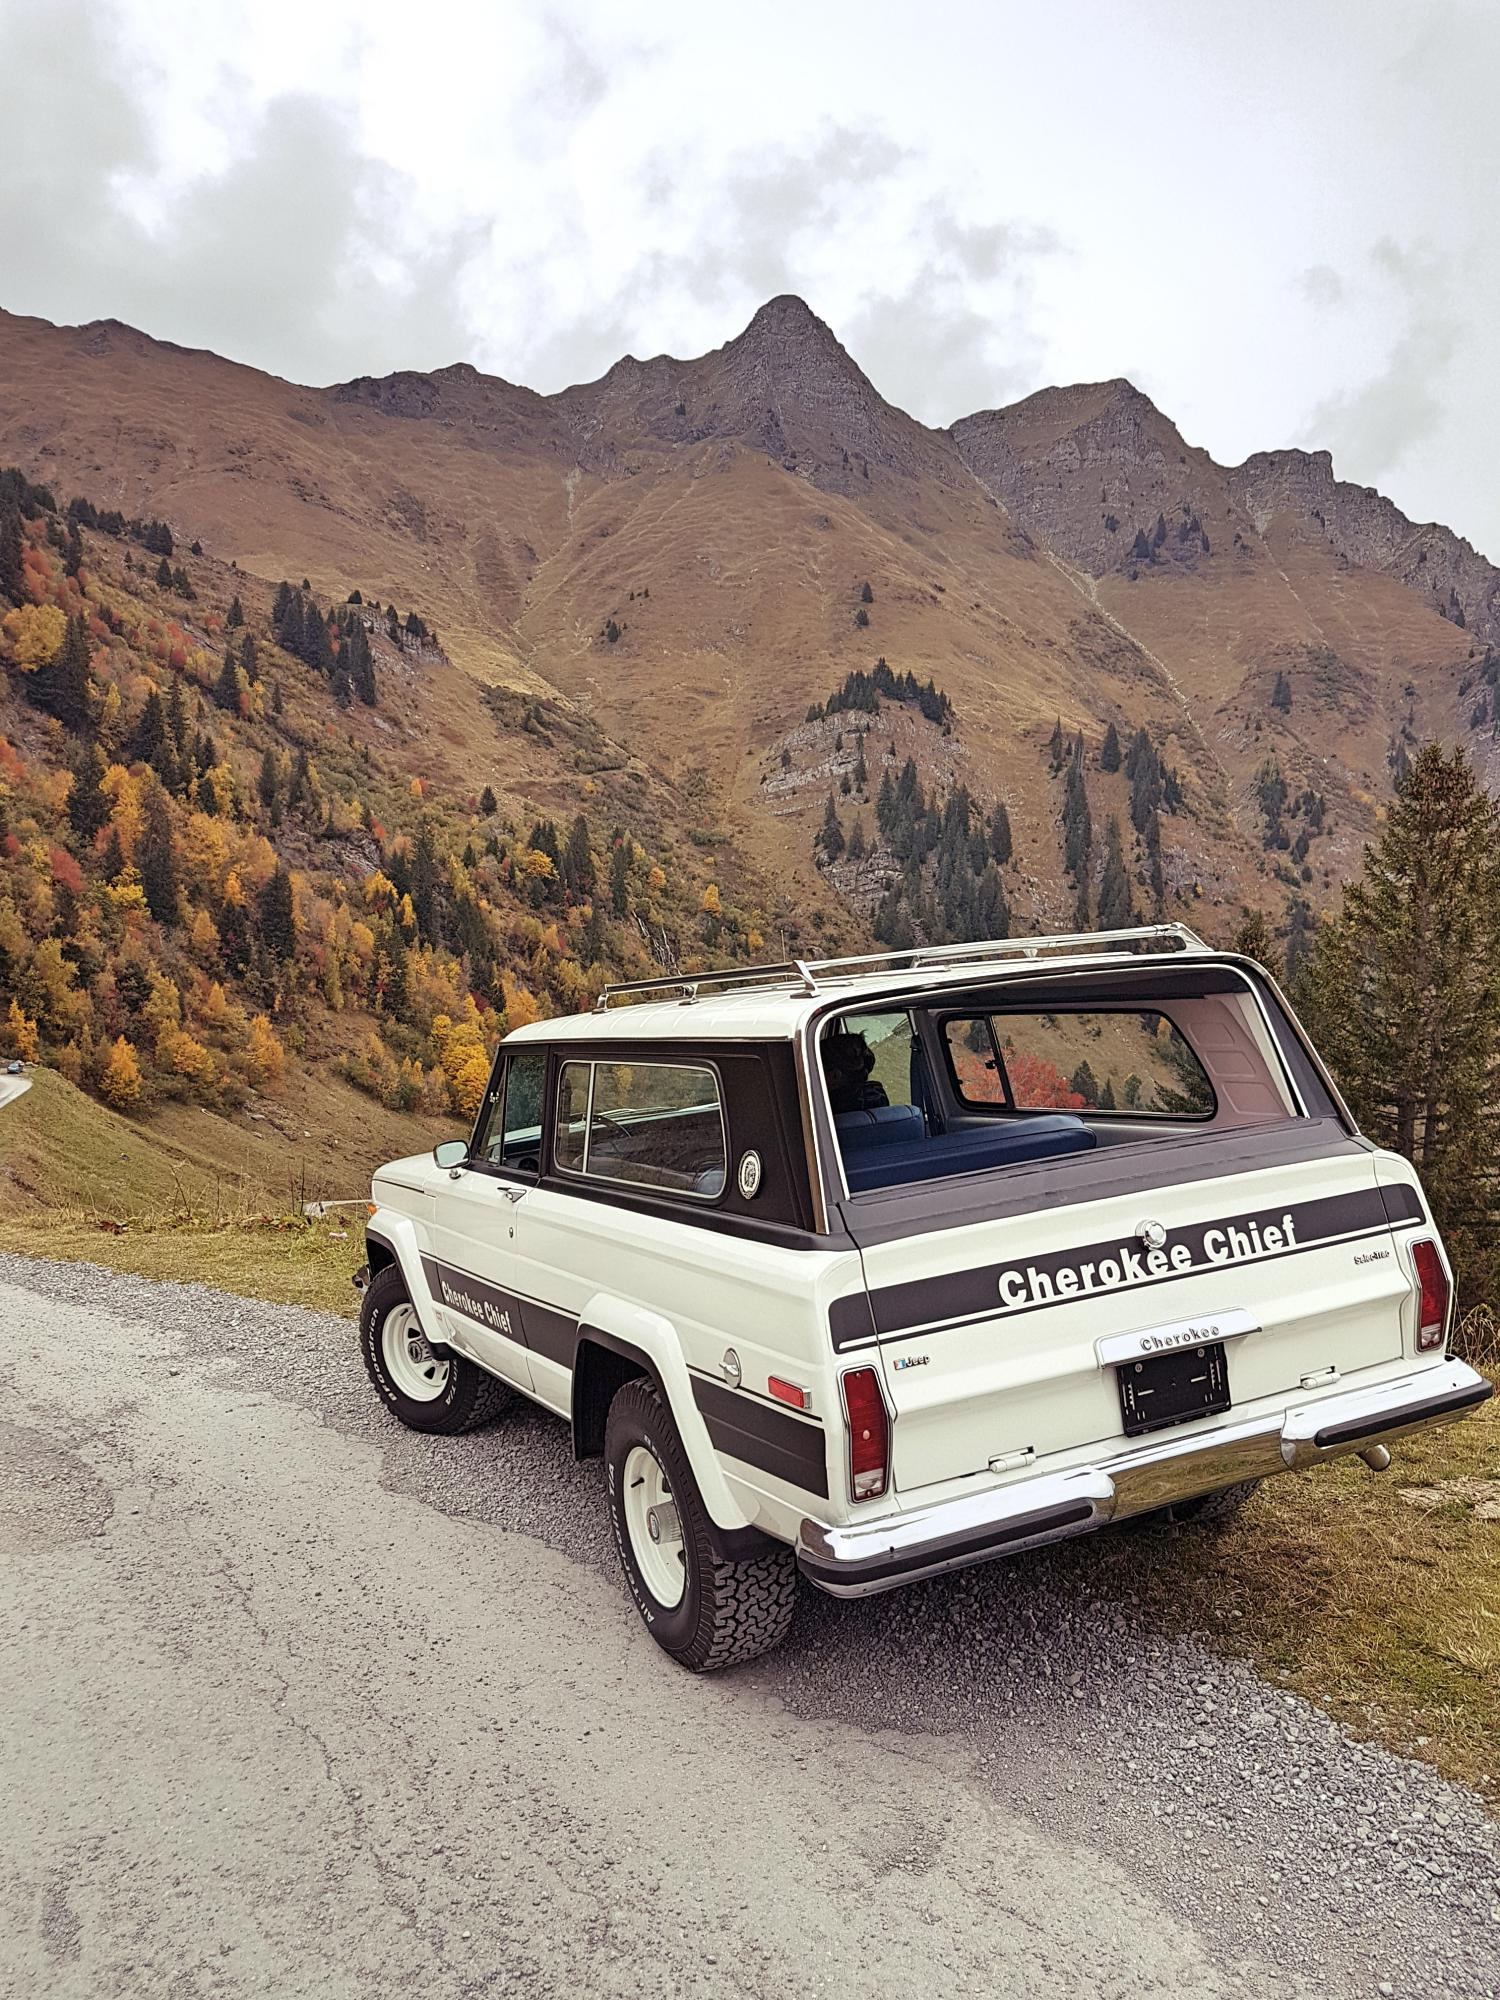 jeep-cherokee-chief-1978-shooting-morgins-switzerland-86.jpg